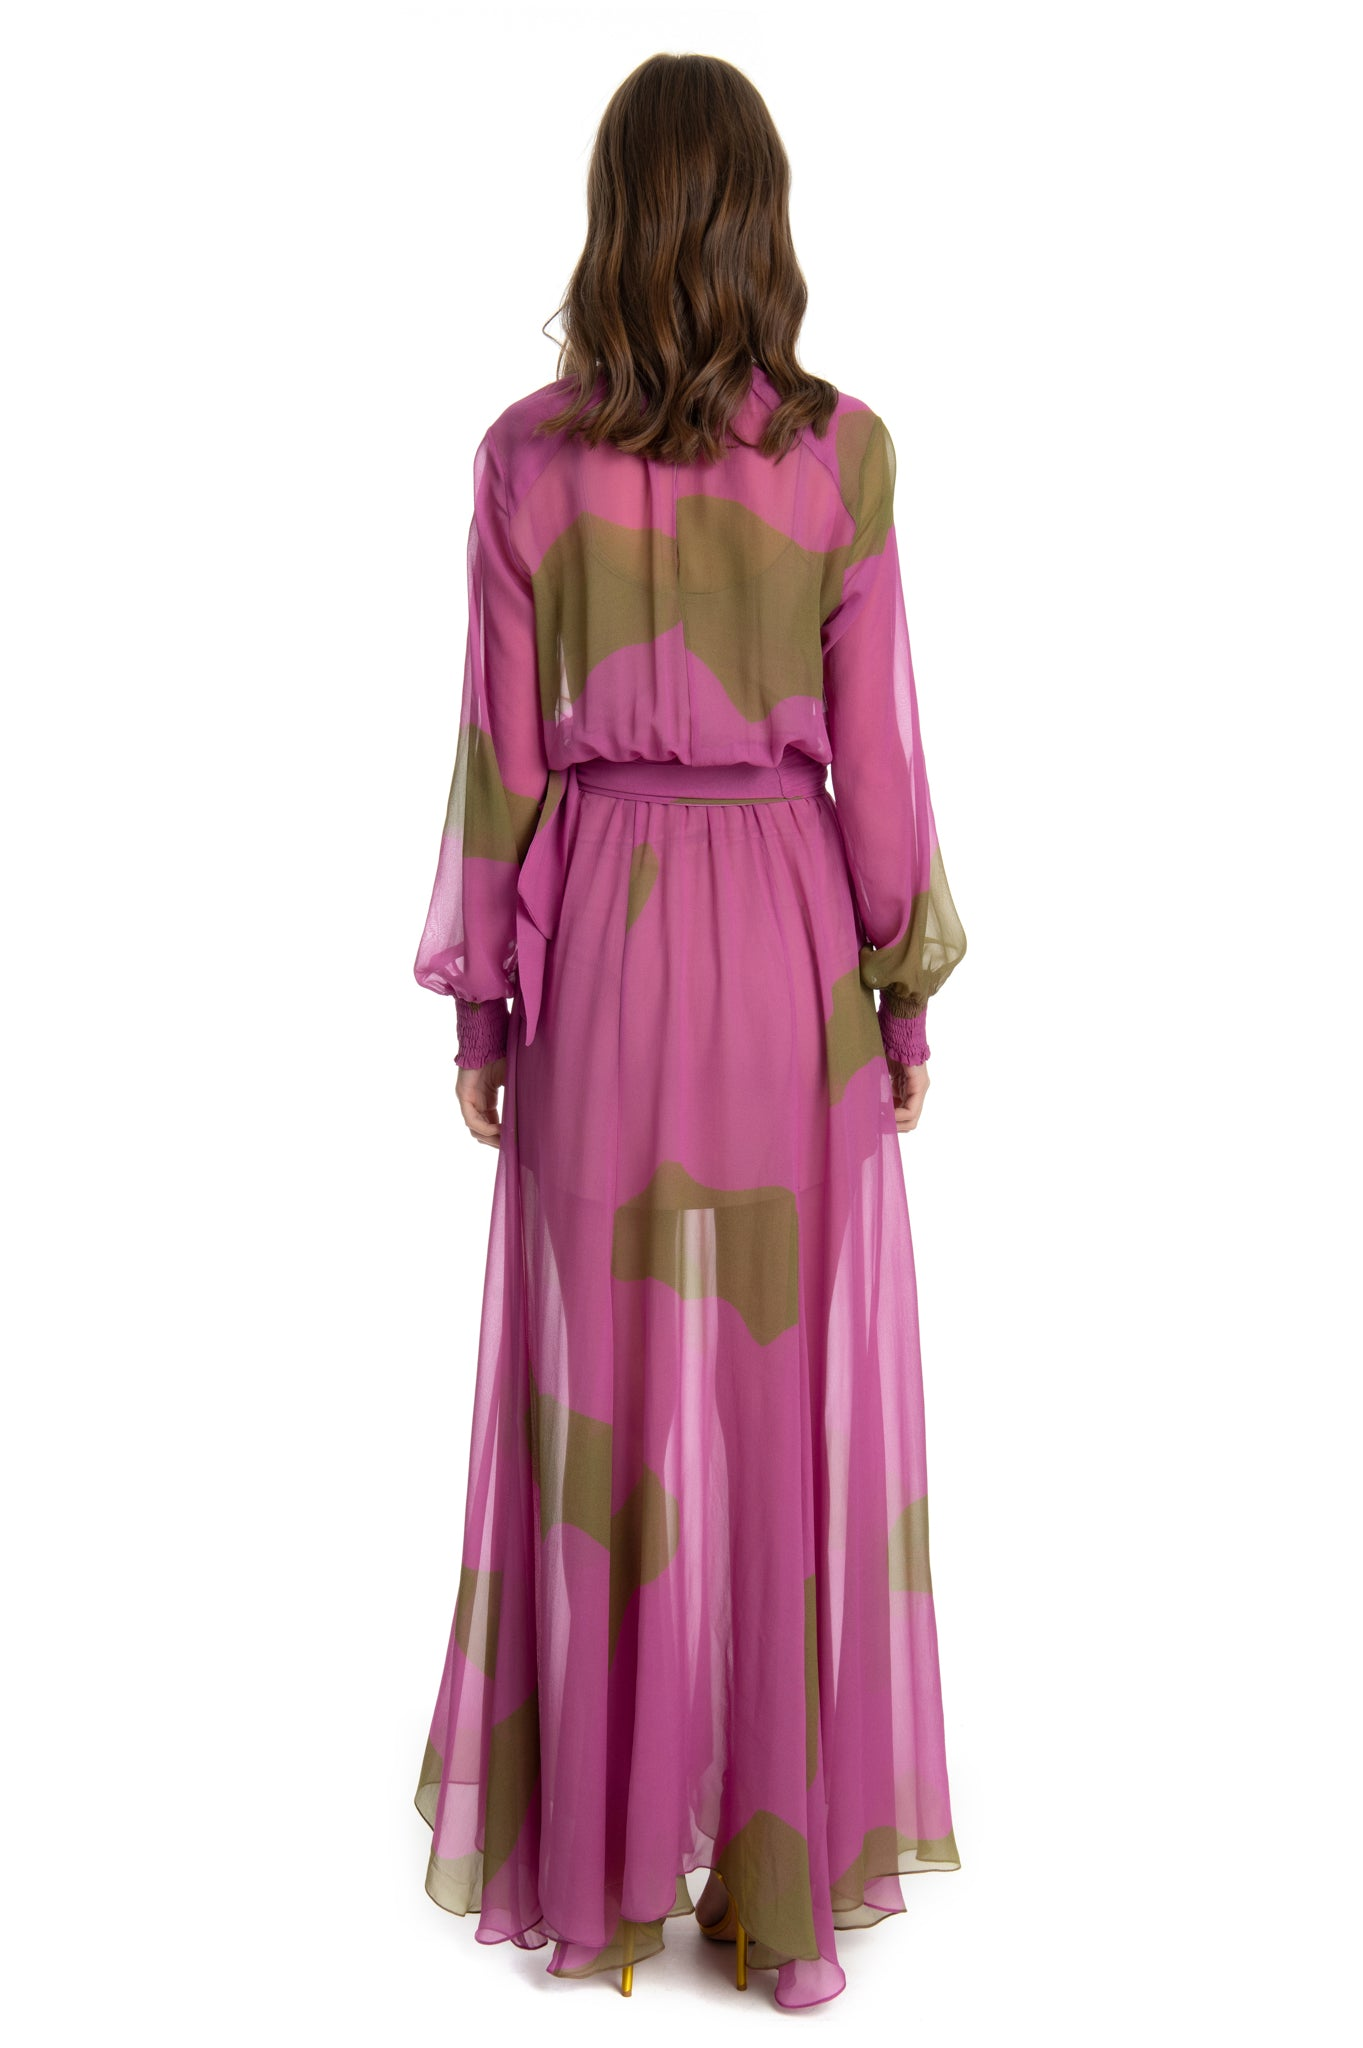 FUCHSIA DANIELA DRESS